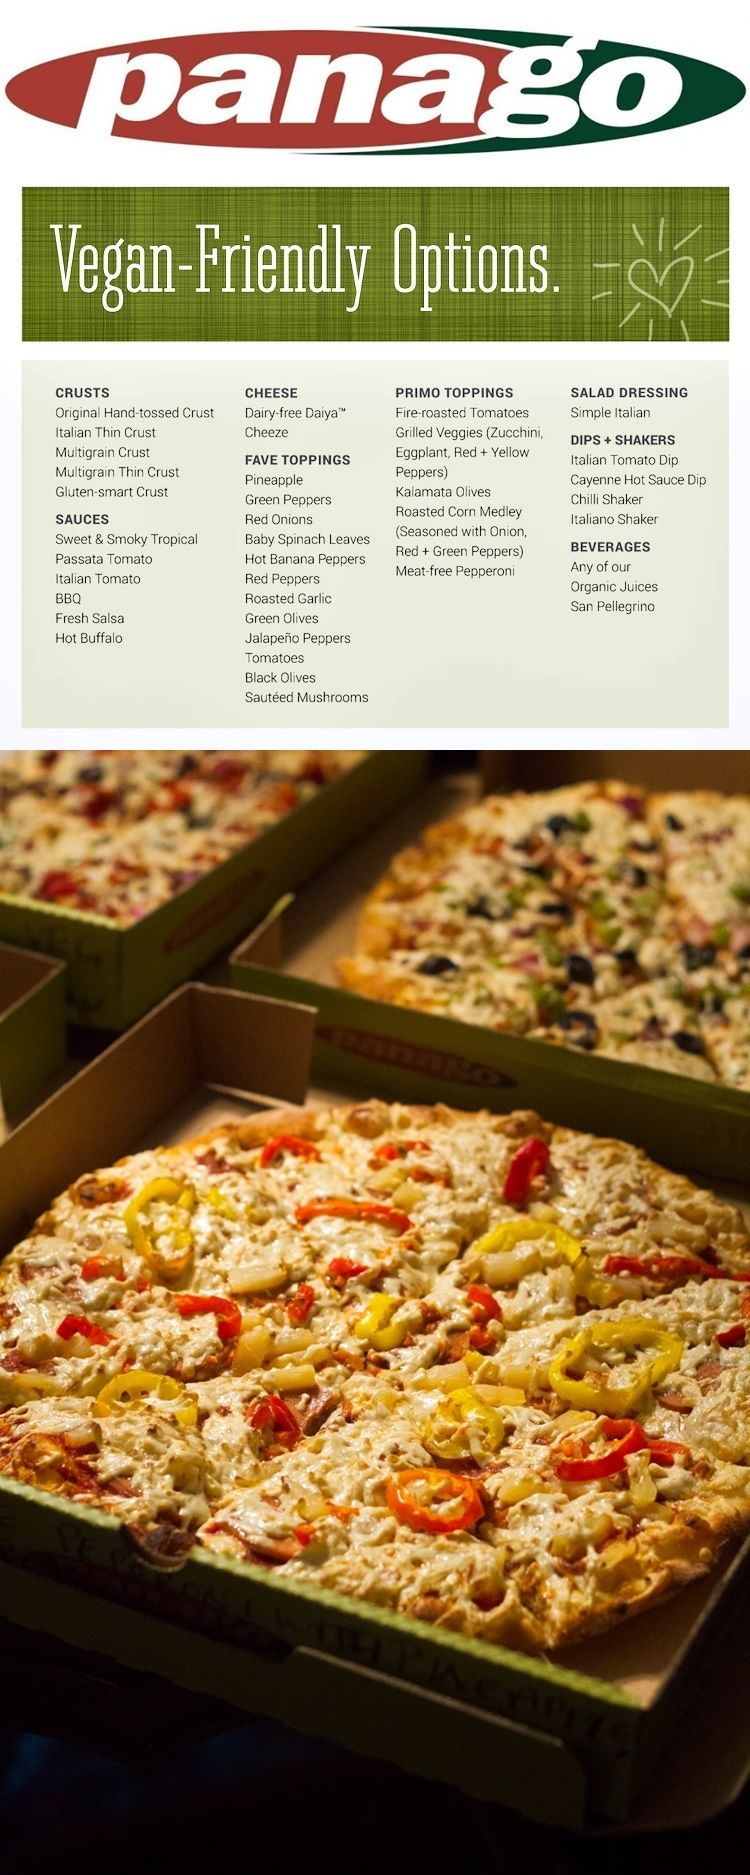 Panago Pizza Offers A HUGE List Of Vegan Menu Options Including Dairy Free Cheese Meatless Pepperoni Gluten Crust Details